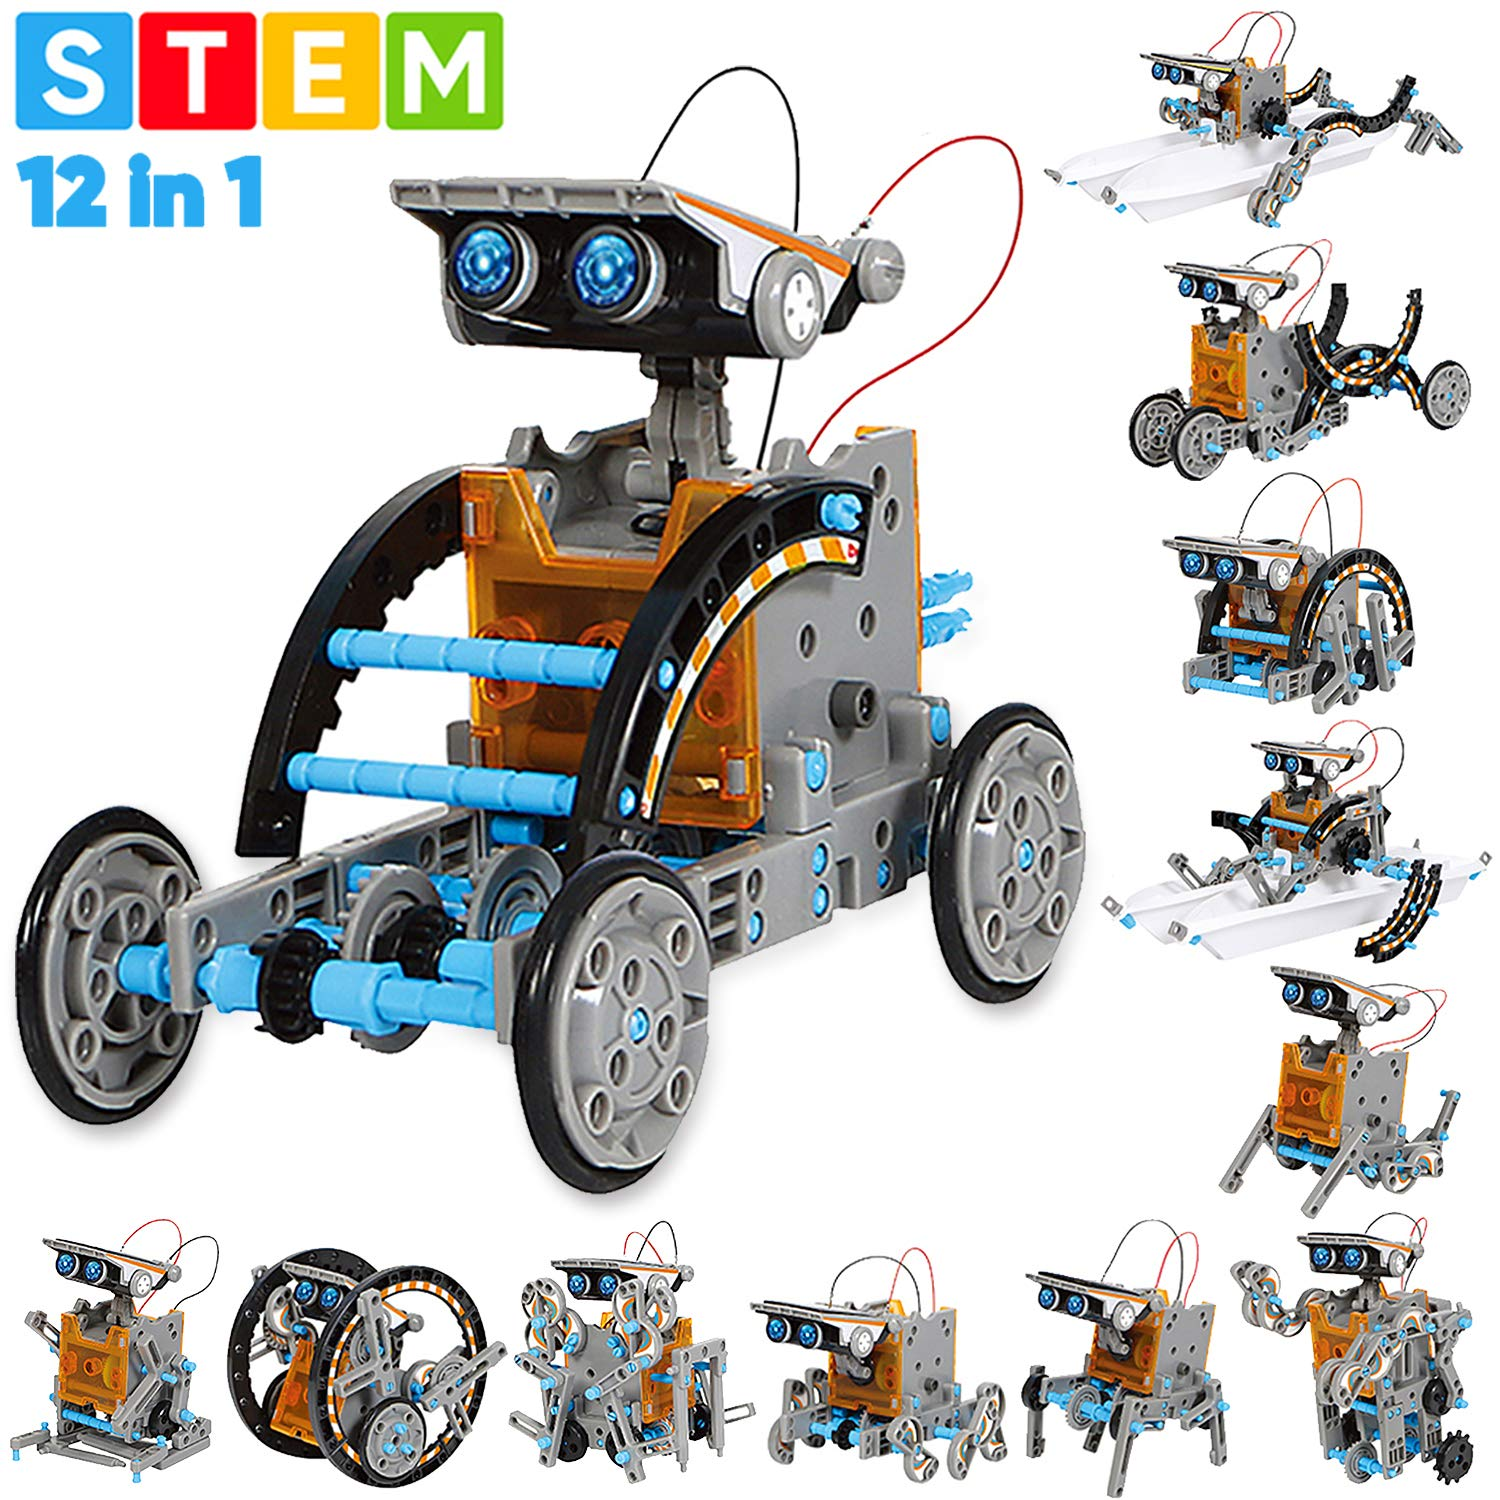 Sillbird STEM 12-in-1 Education Solar Robot Toys -190 Pieces DIY Building Science Experiment Kit for Kids Aged 8-10 and Older,Solar Powered by The Sun by Sillbird